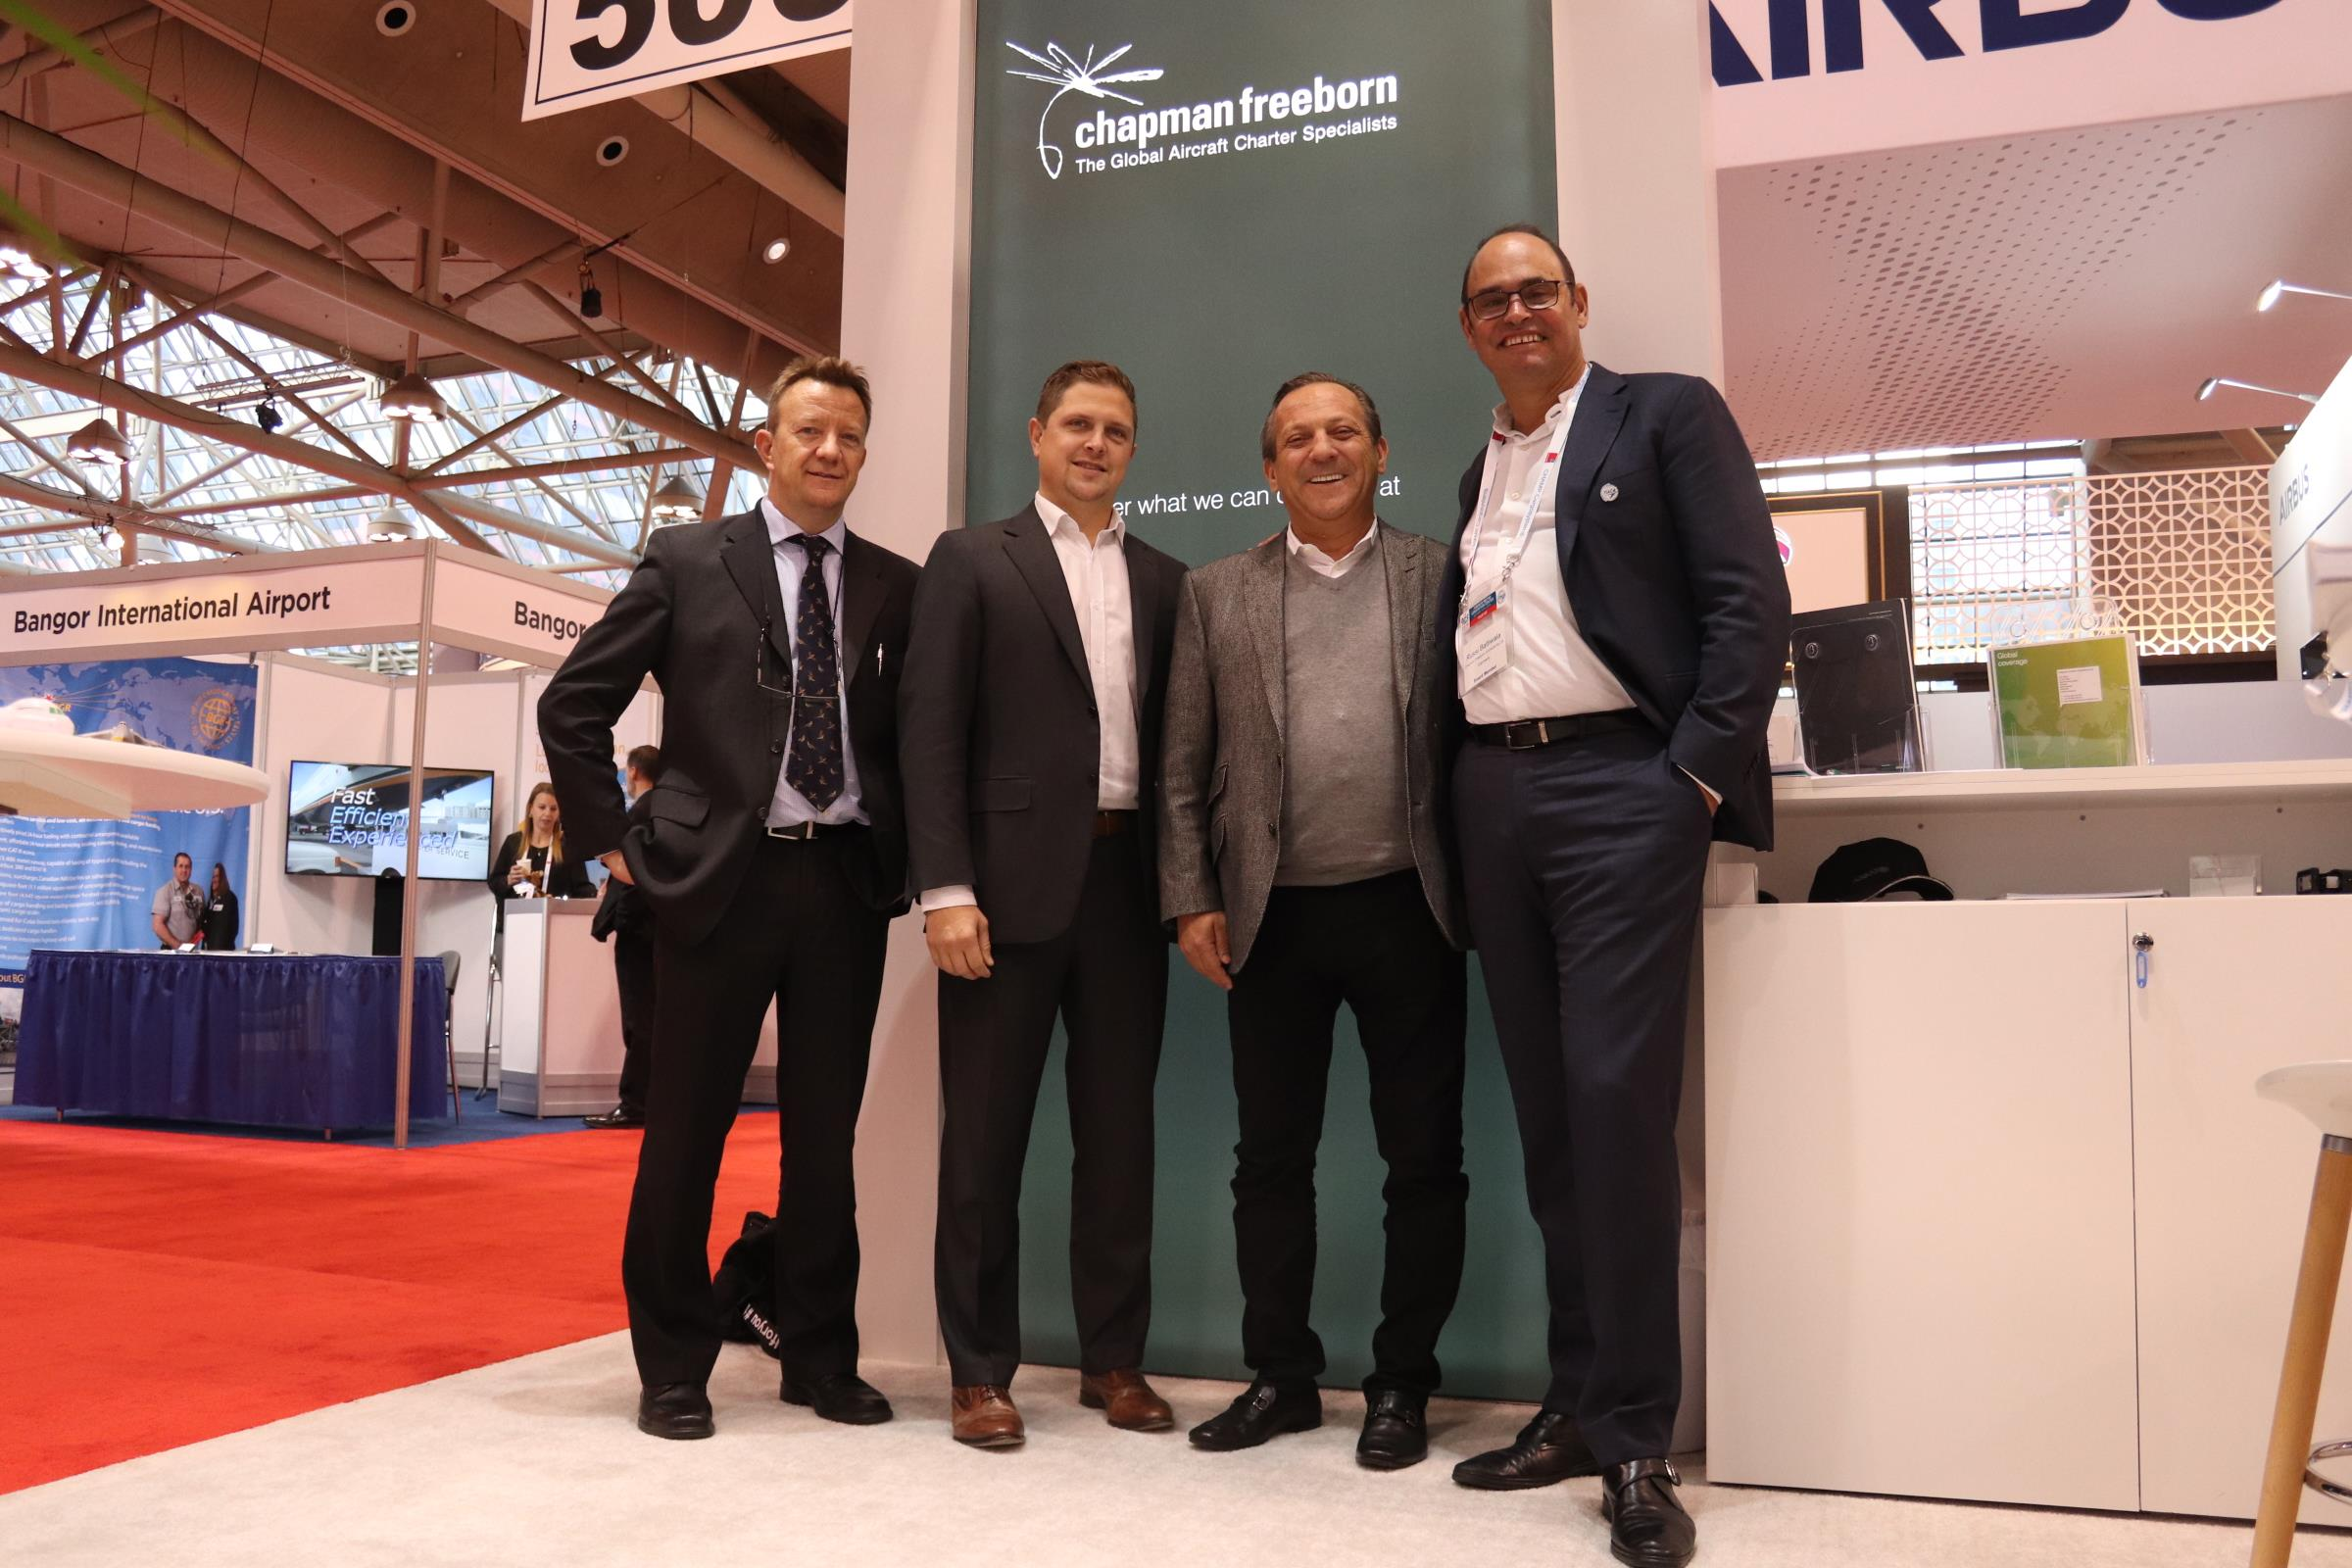 From left to right: Pierre van der Stichele, cargo operations director at Chapman Freeborn; Brian Potvin, chief operating officer at GTA; Mario D'Urso, GTA ceo; and Russi Batliwala, ceo of Chapman Freeborn.